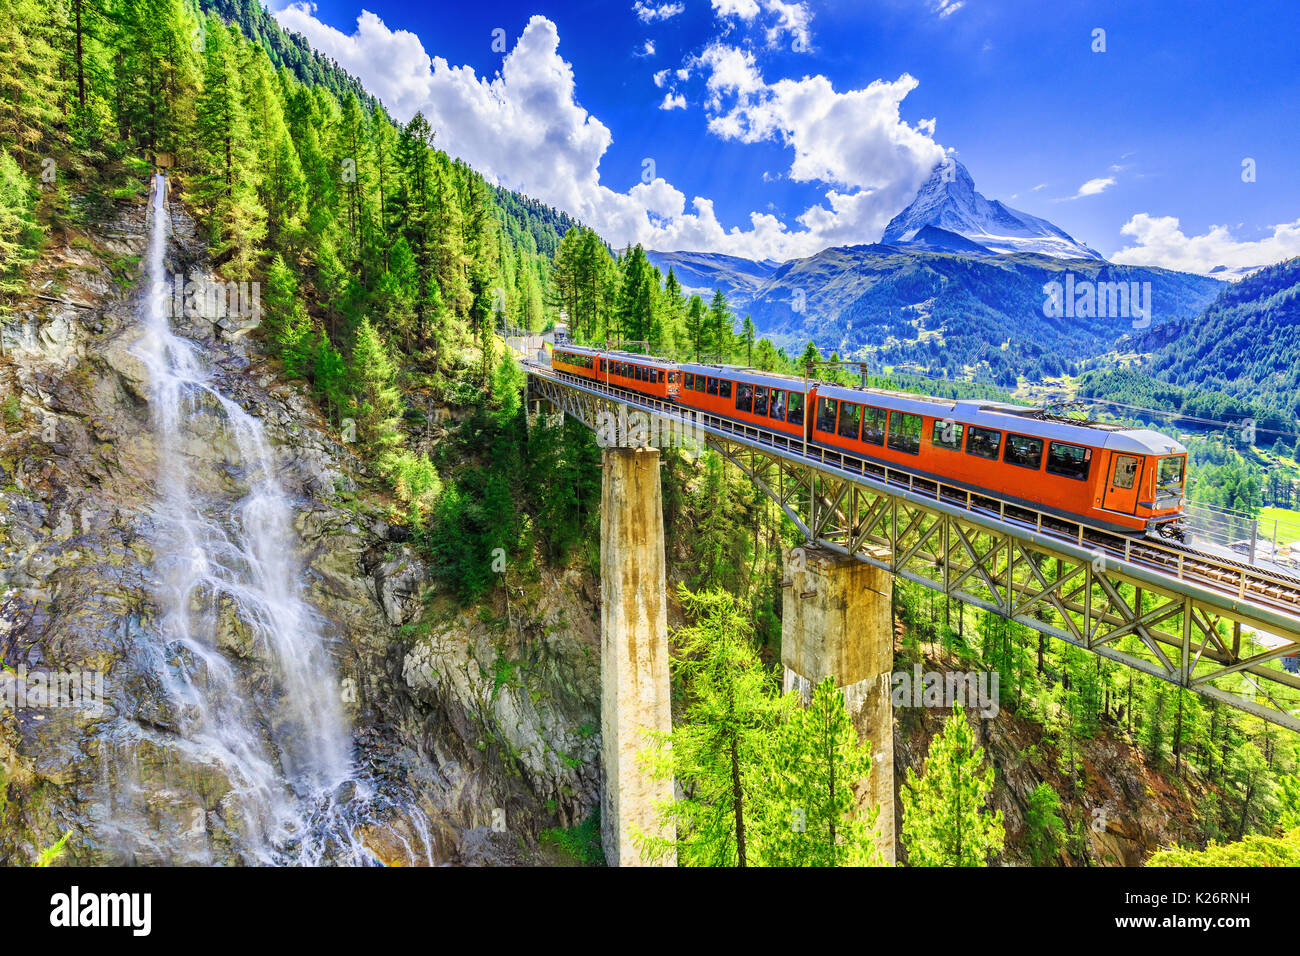 Zermatt, Switzerland. Gornergrat tourist train with waterfall, bridge and Matterhorn. Valais region. - Stock Image